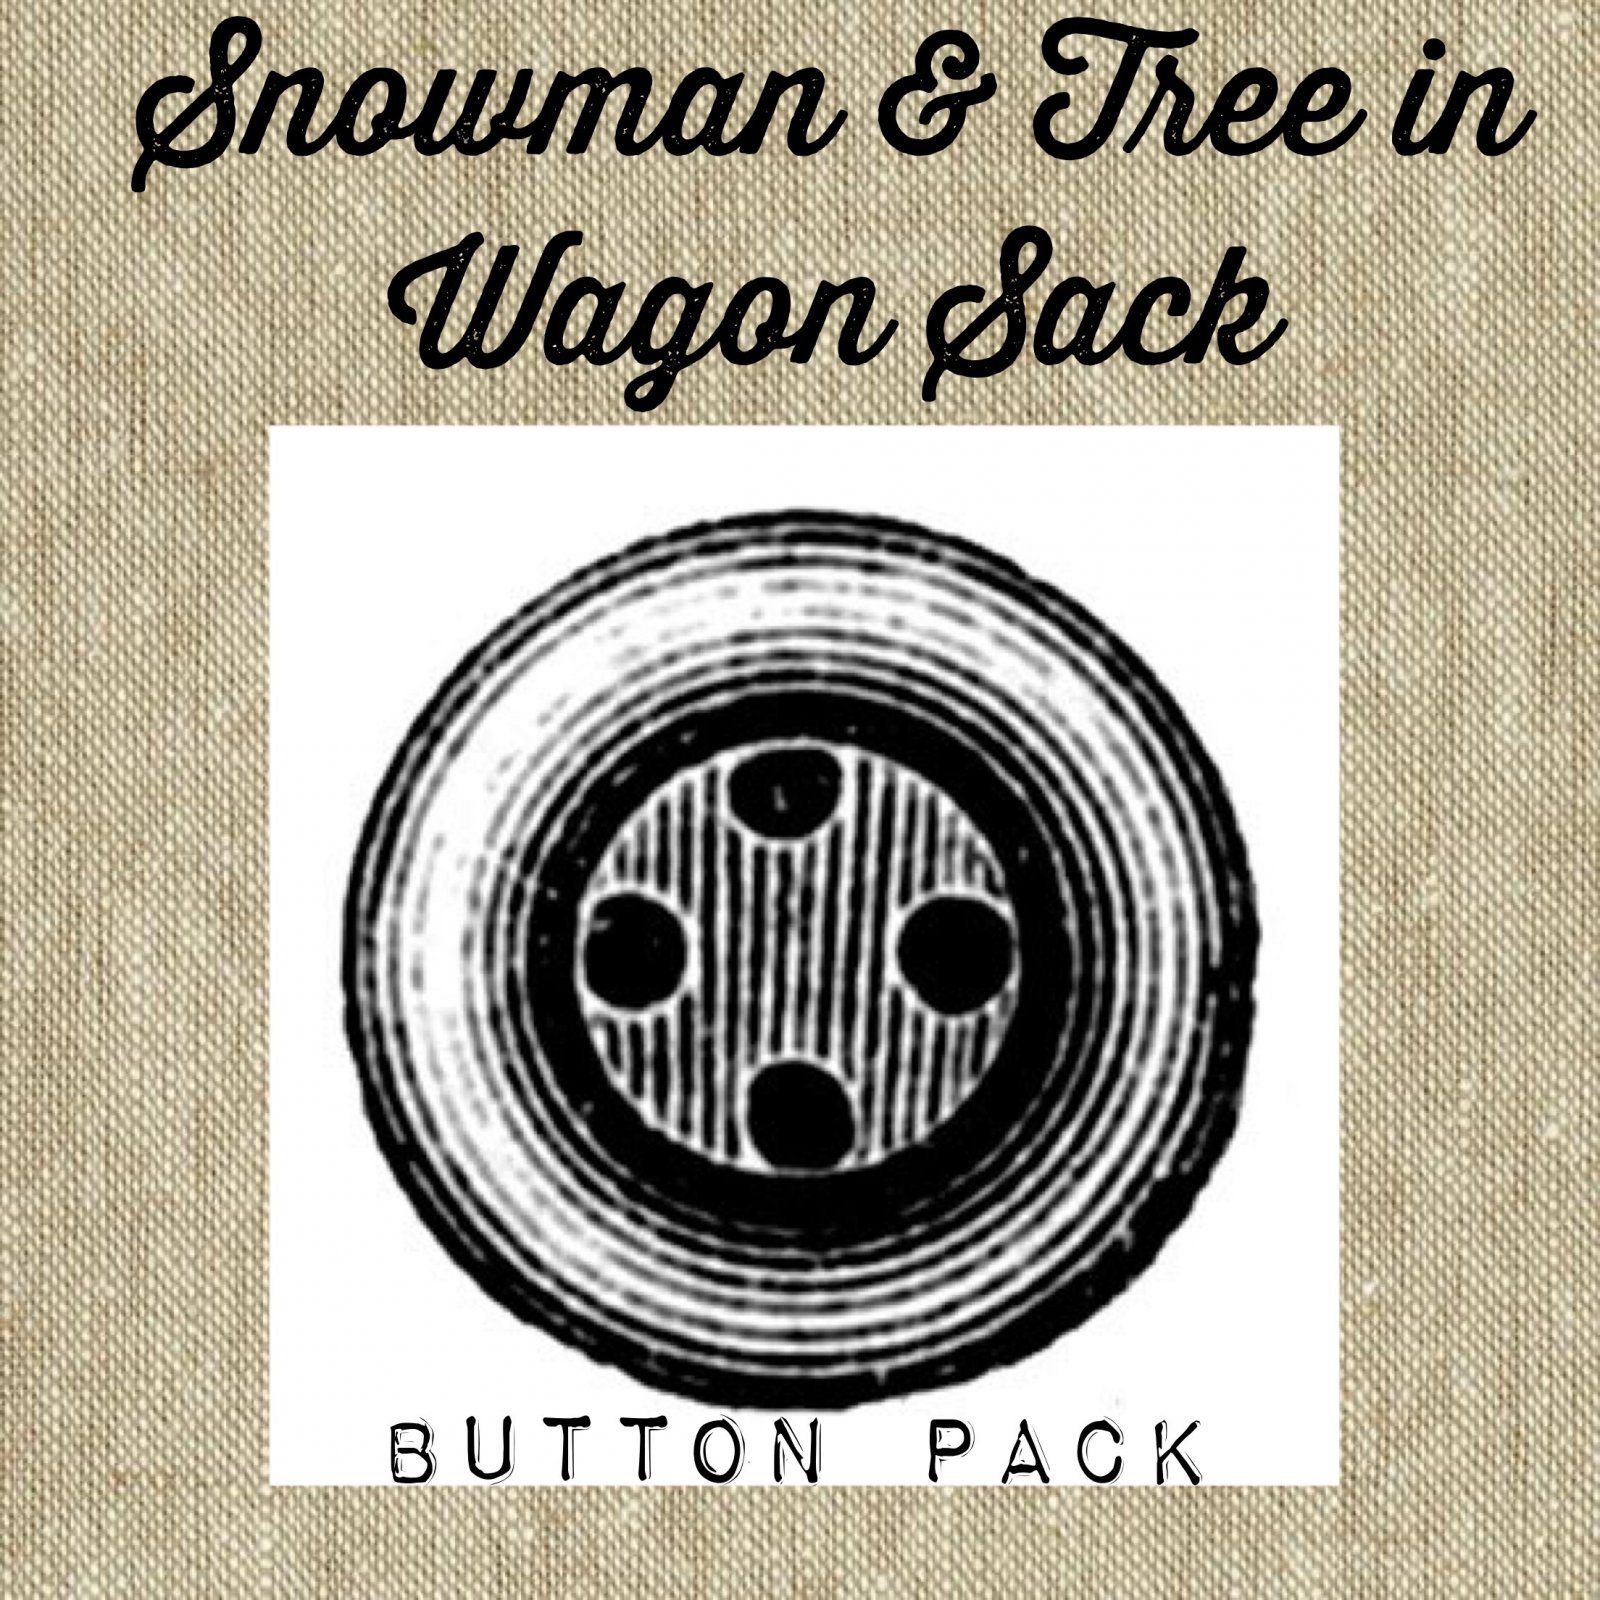 Snowman & Tree in Wagon Sack Button Pack